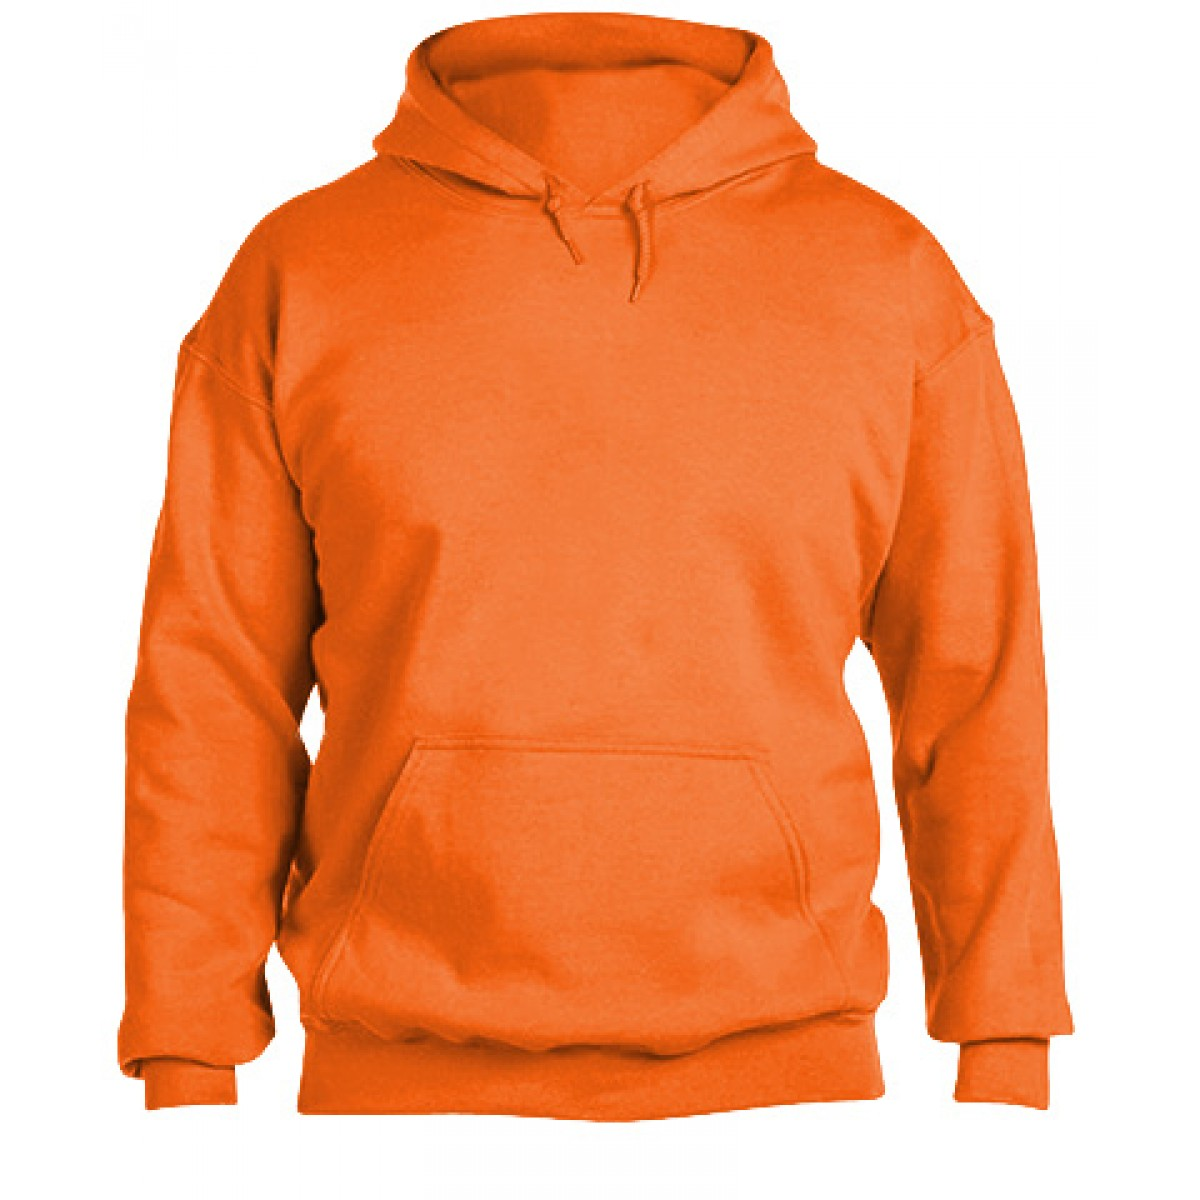 Hooded Sweatshirt 50/50 Heavy Blend -Safety Orange-XL